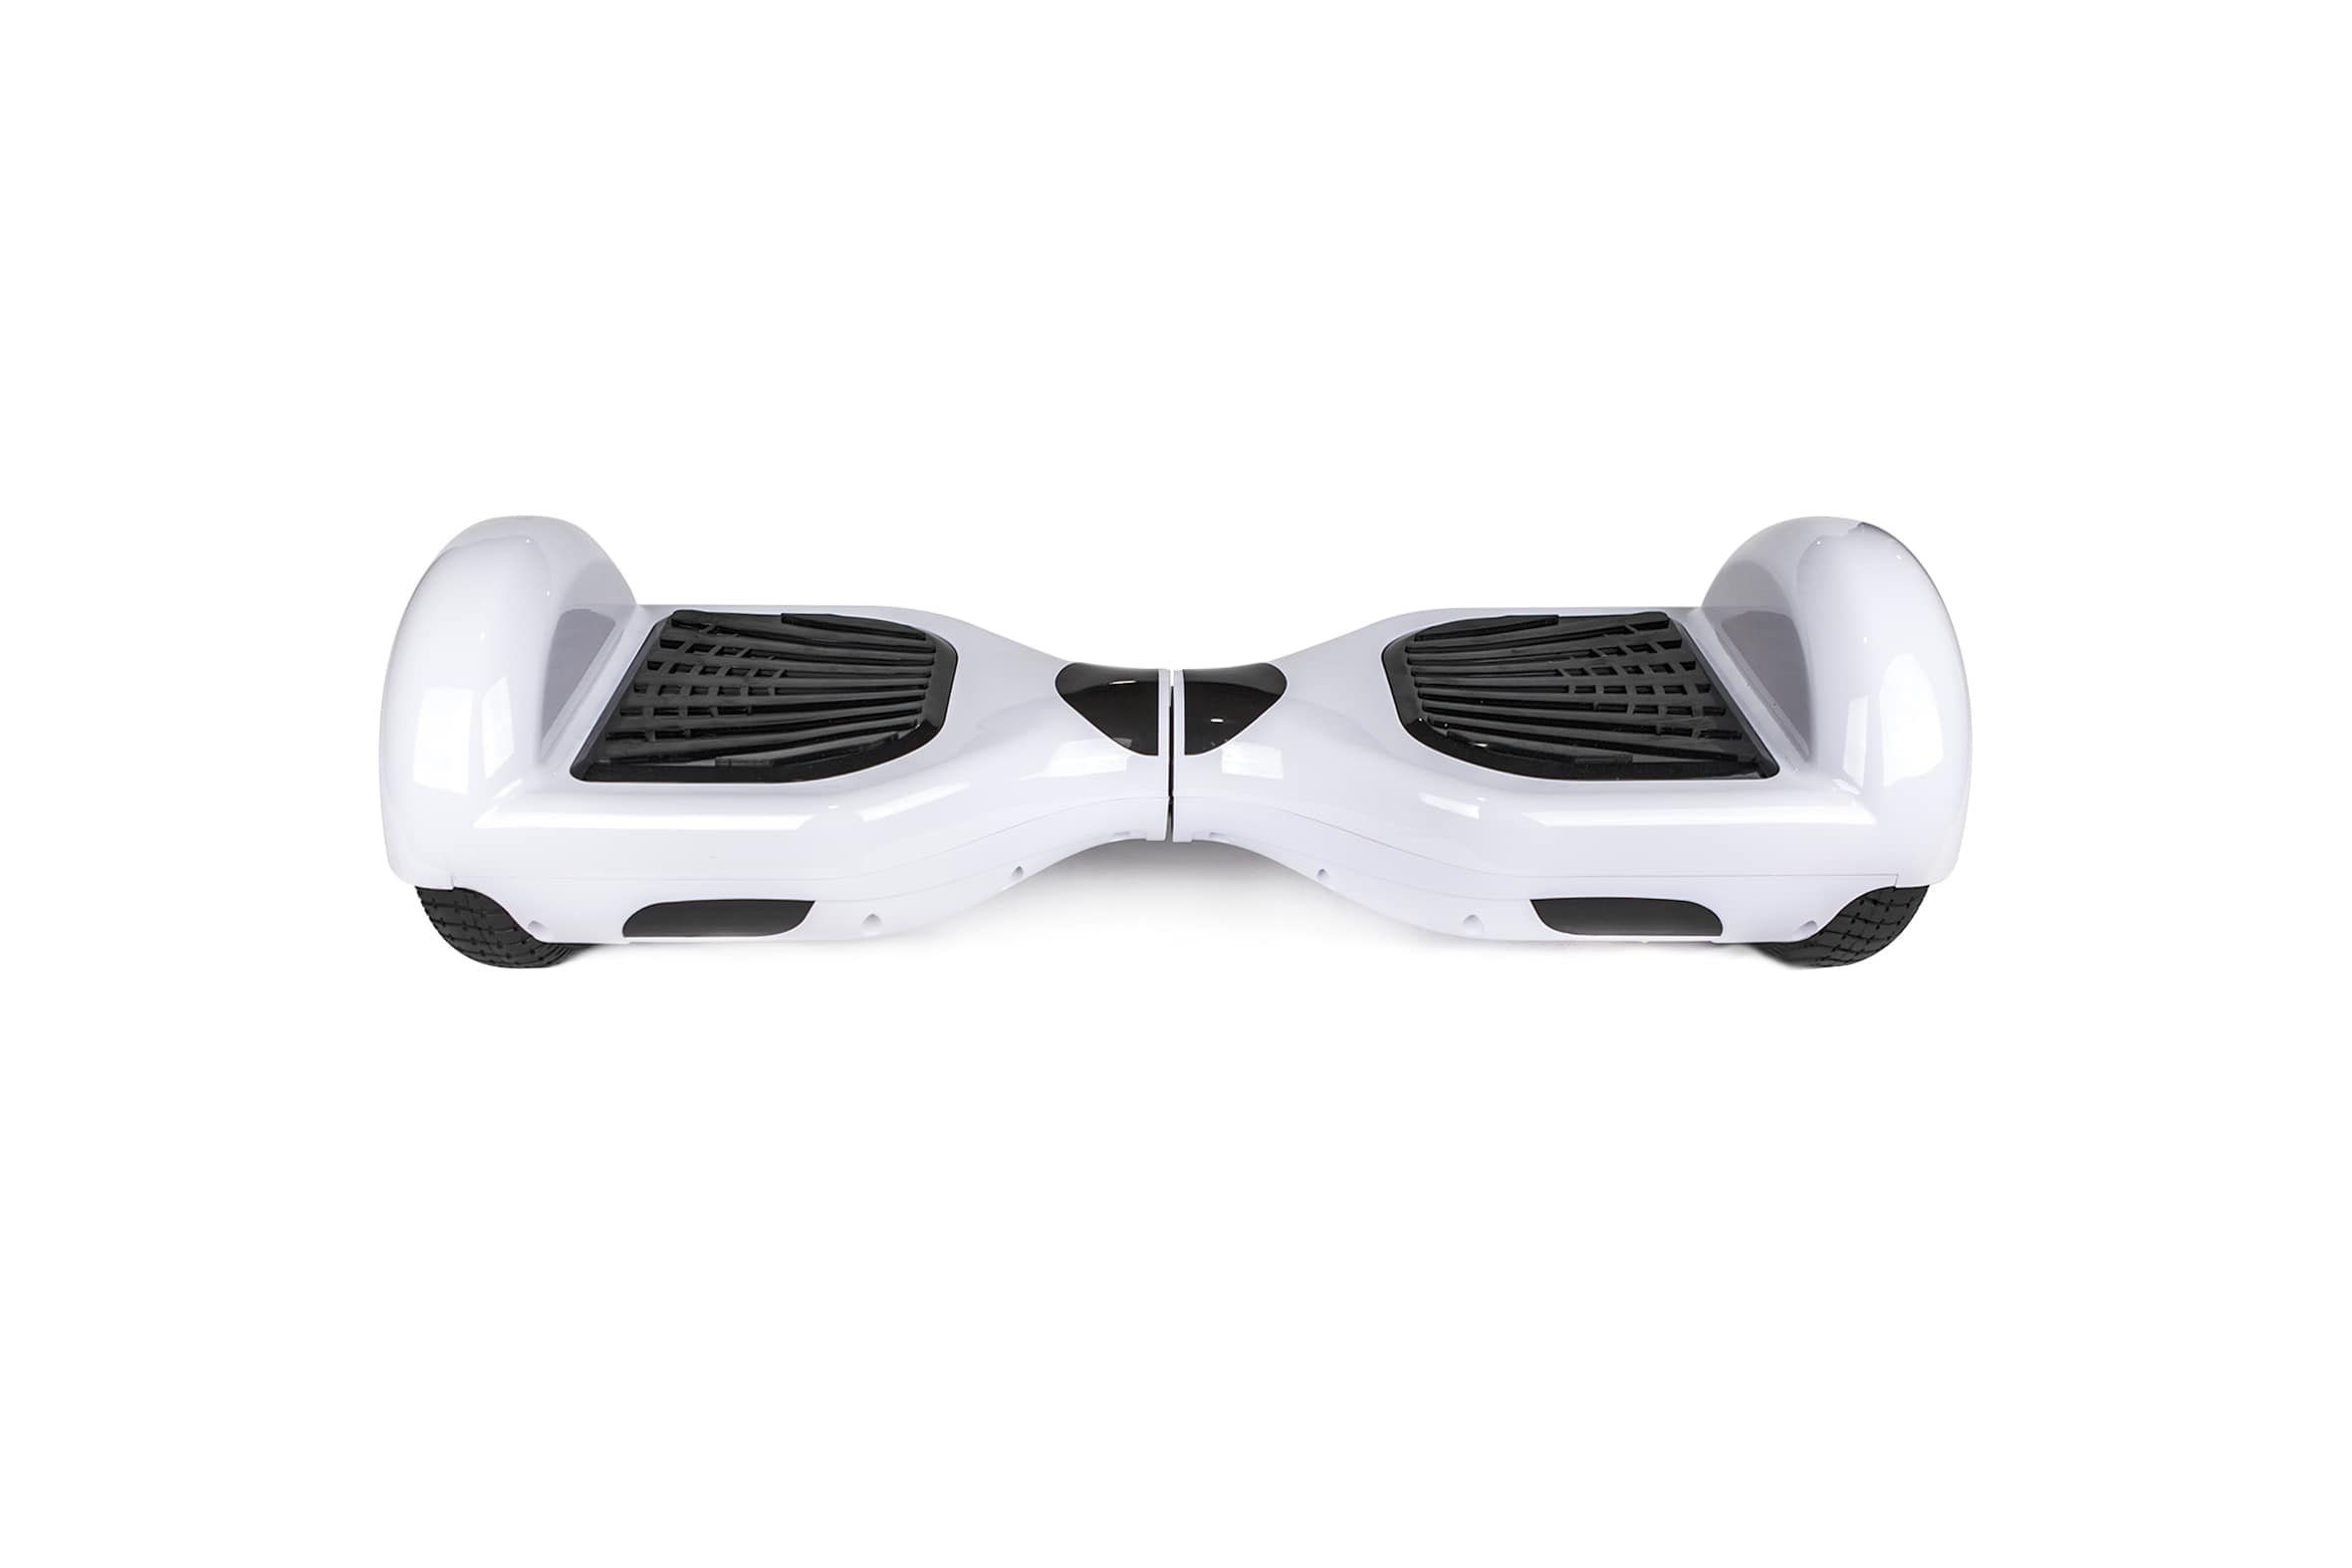 hoverboard blanc gyropode en vente hoverboard pas cher. Black Bedroom Furniture Sets. Home Design Ideas